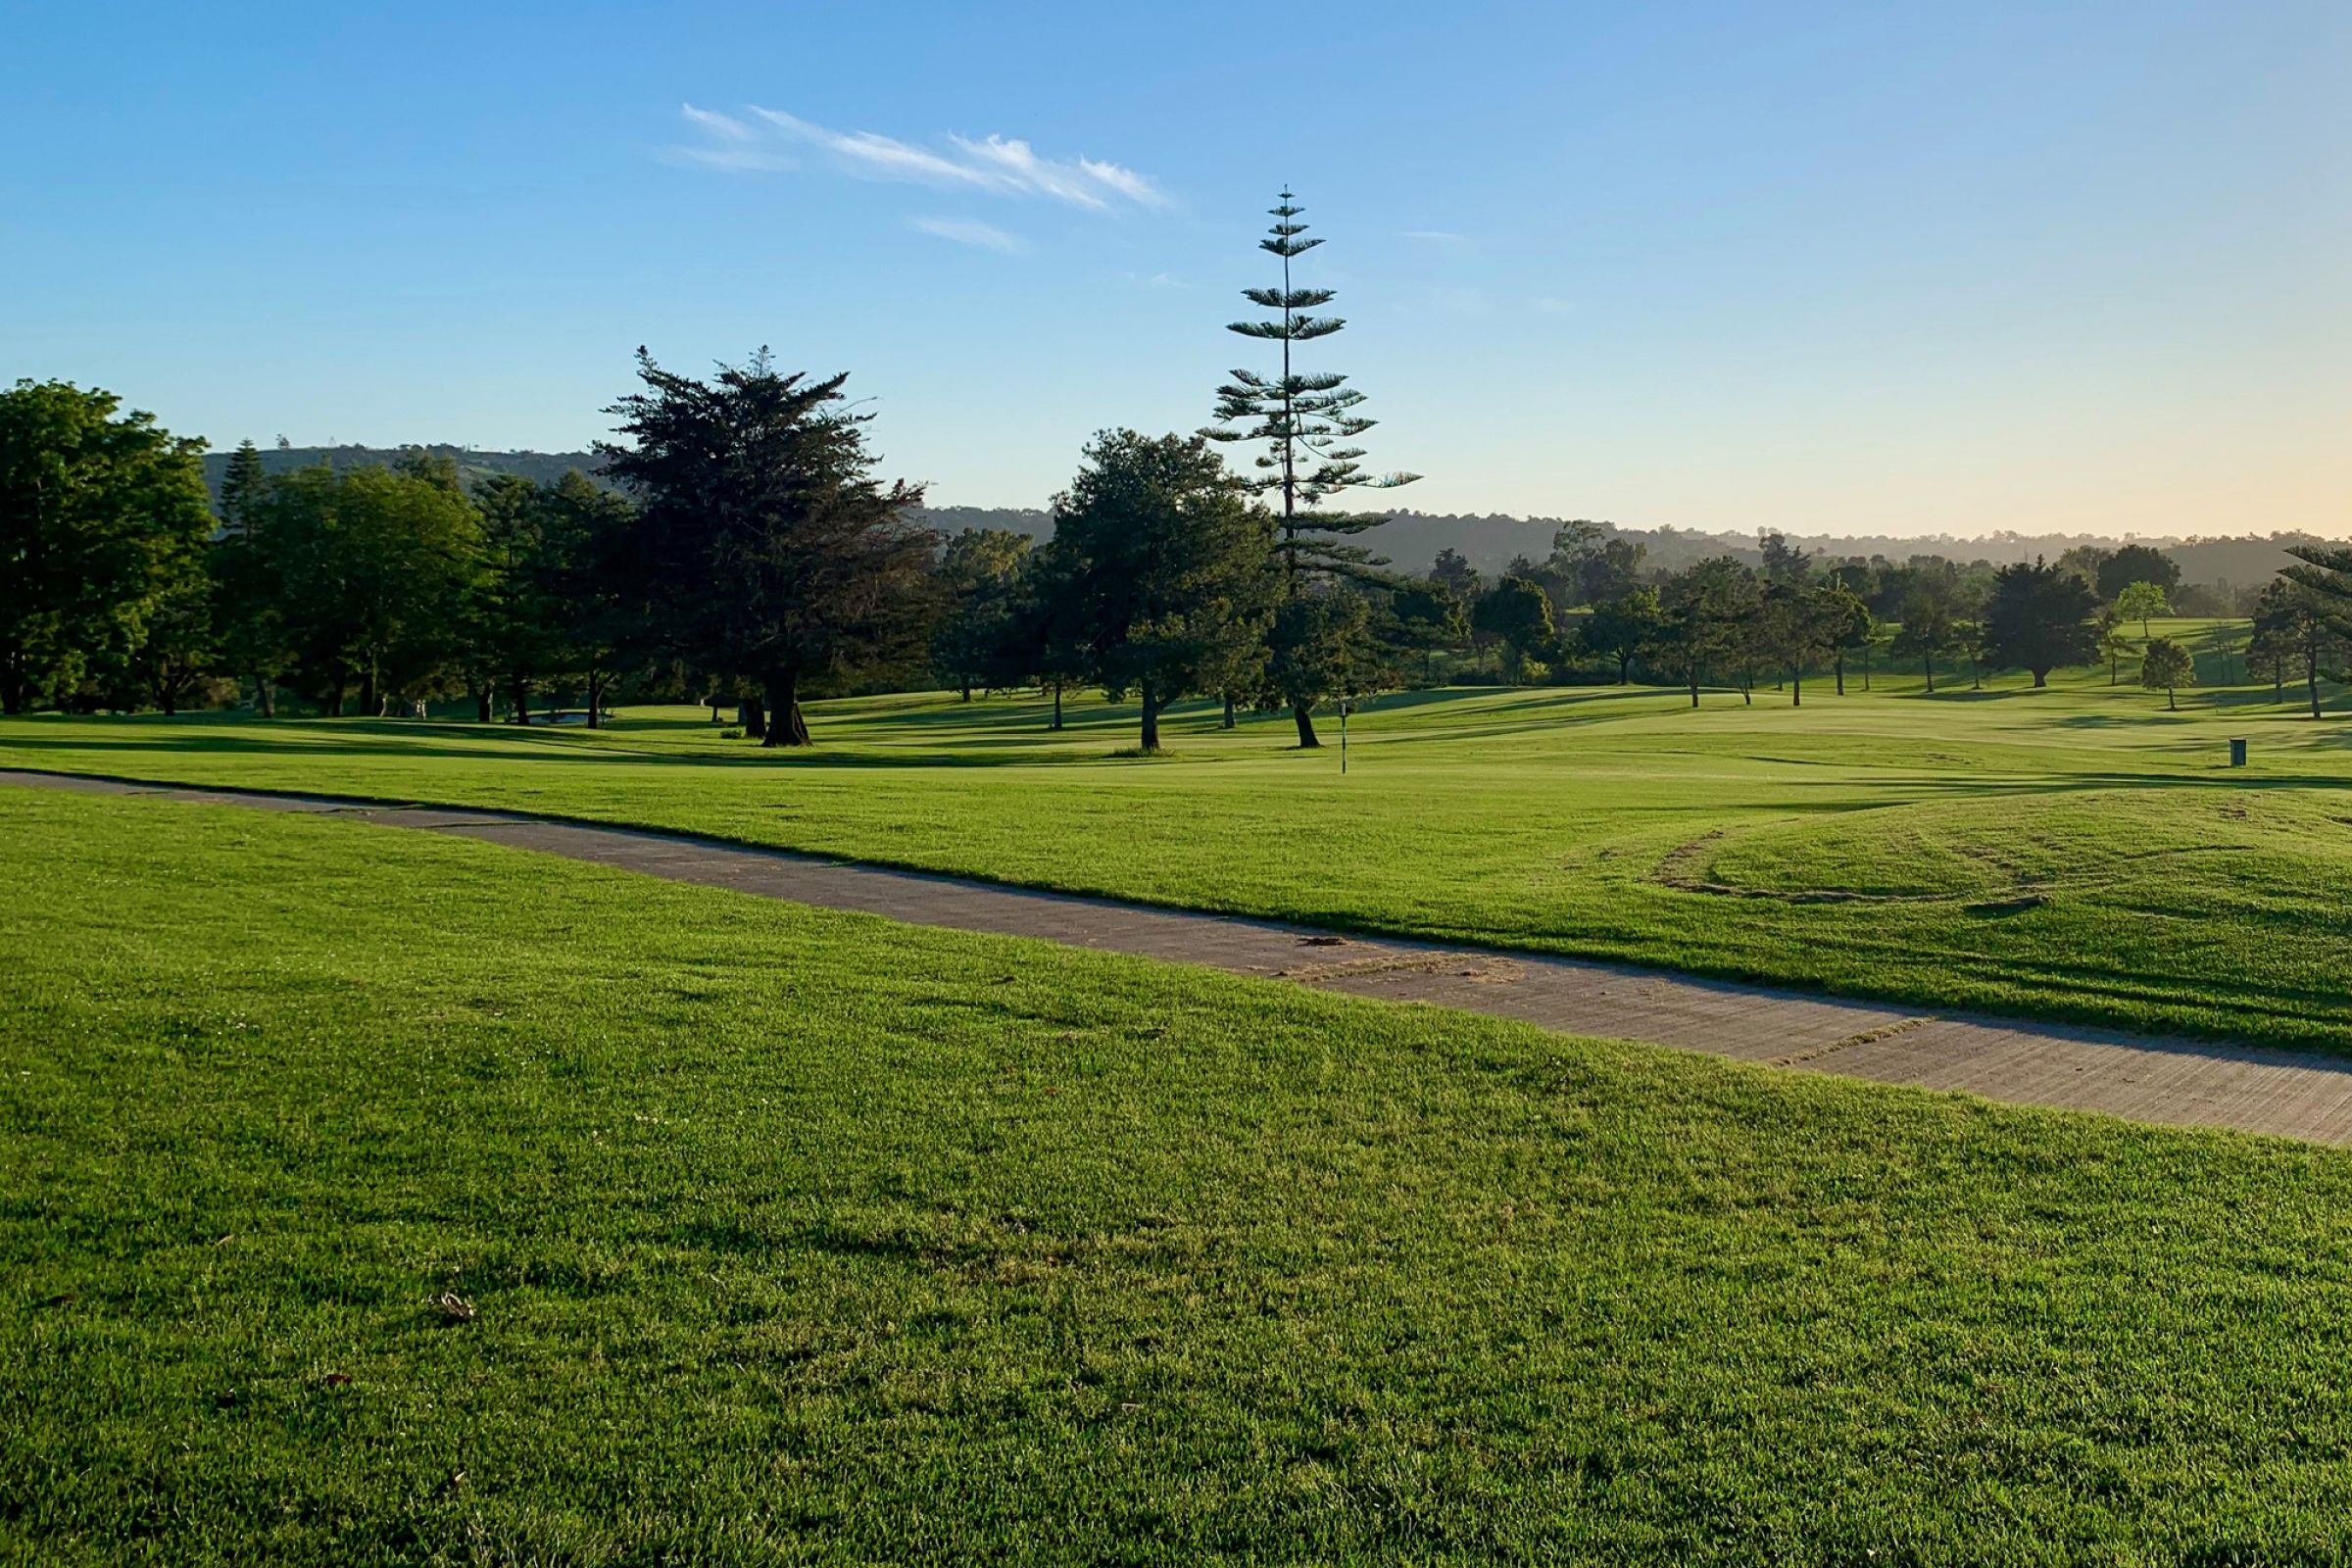 Golf Courses Allowed To Reopen With Restrictions As County Outlines Latest Coronavirus Orders Local News Noozhawk Com